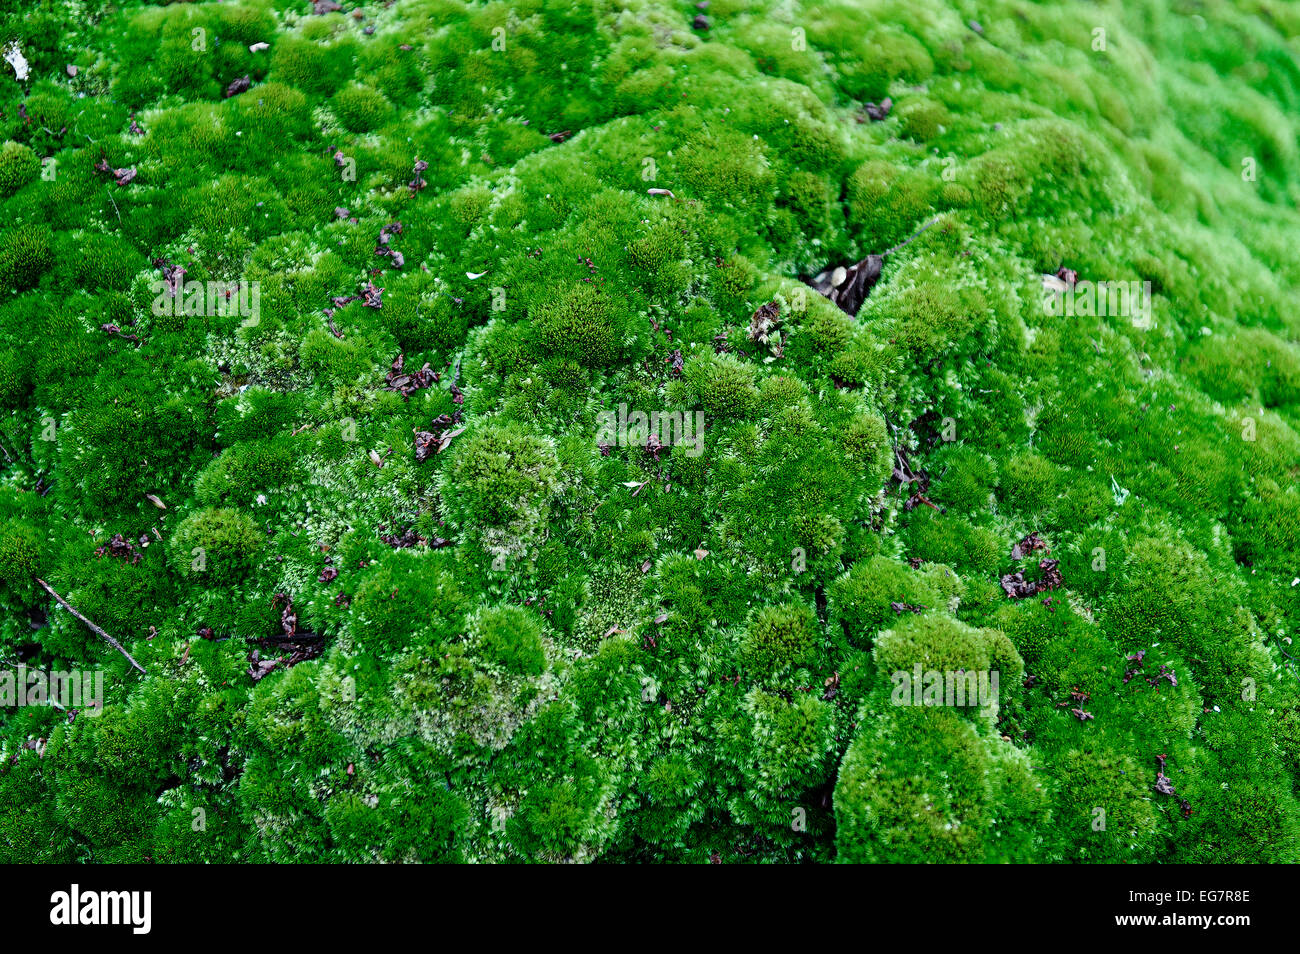 Moss detail. - Stock Image